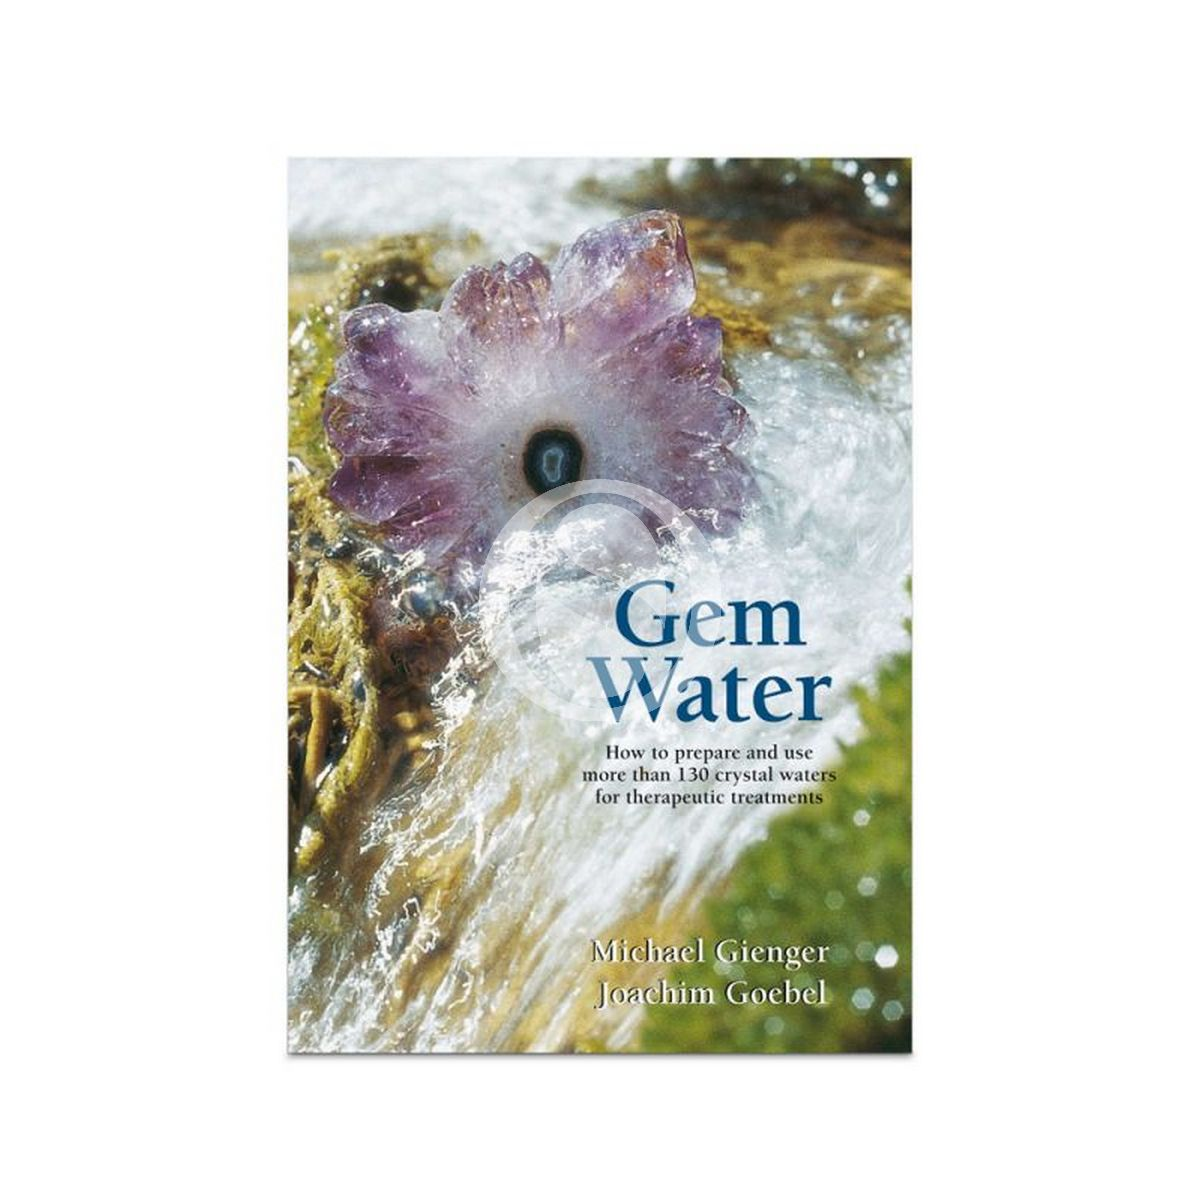 Buch: Gem Water (Gienger, Goebel)